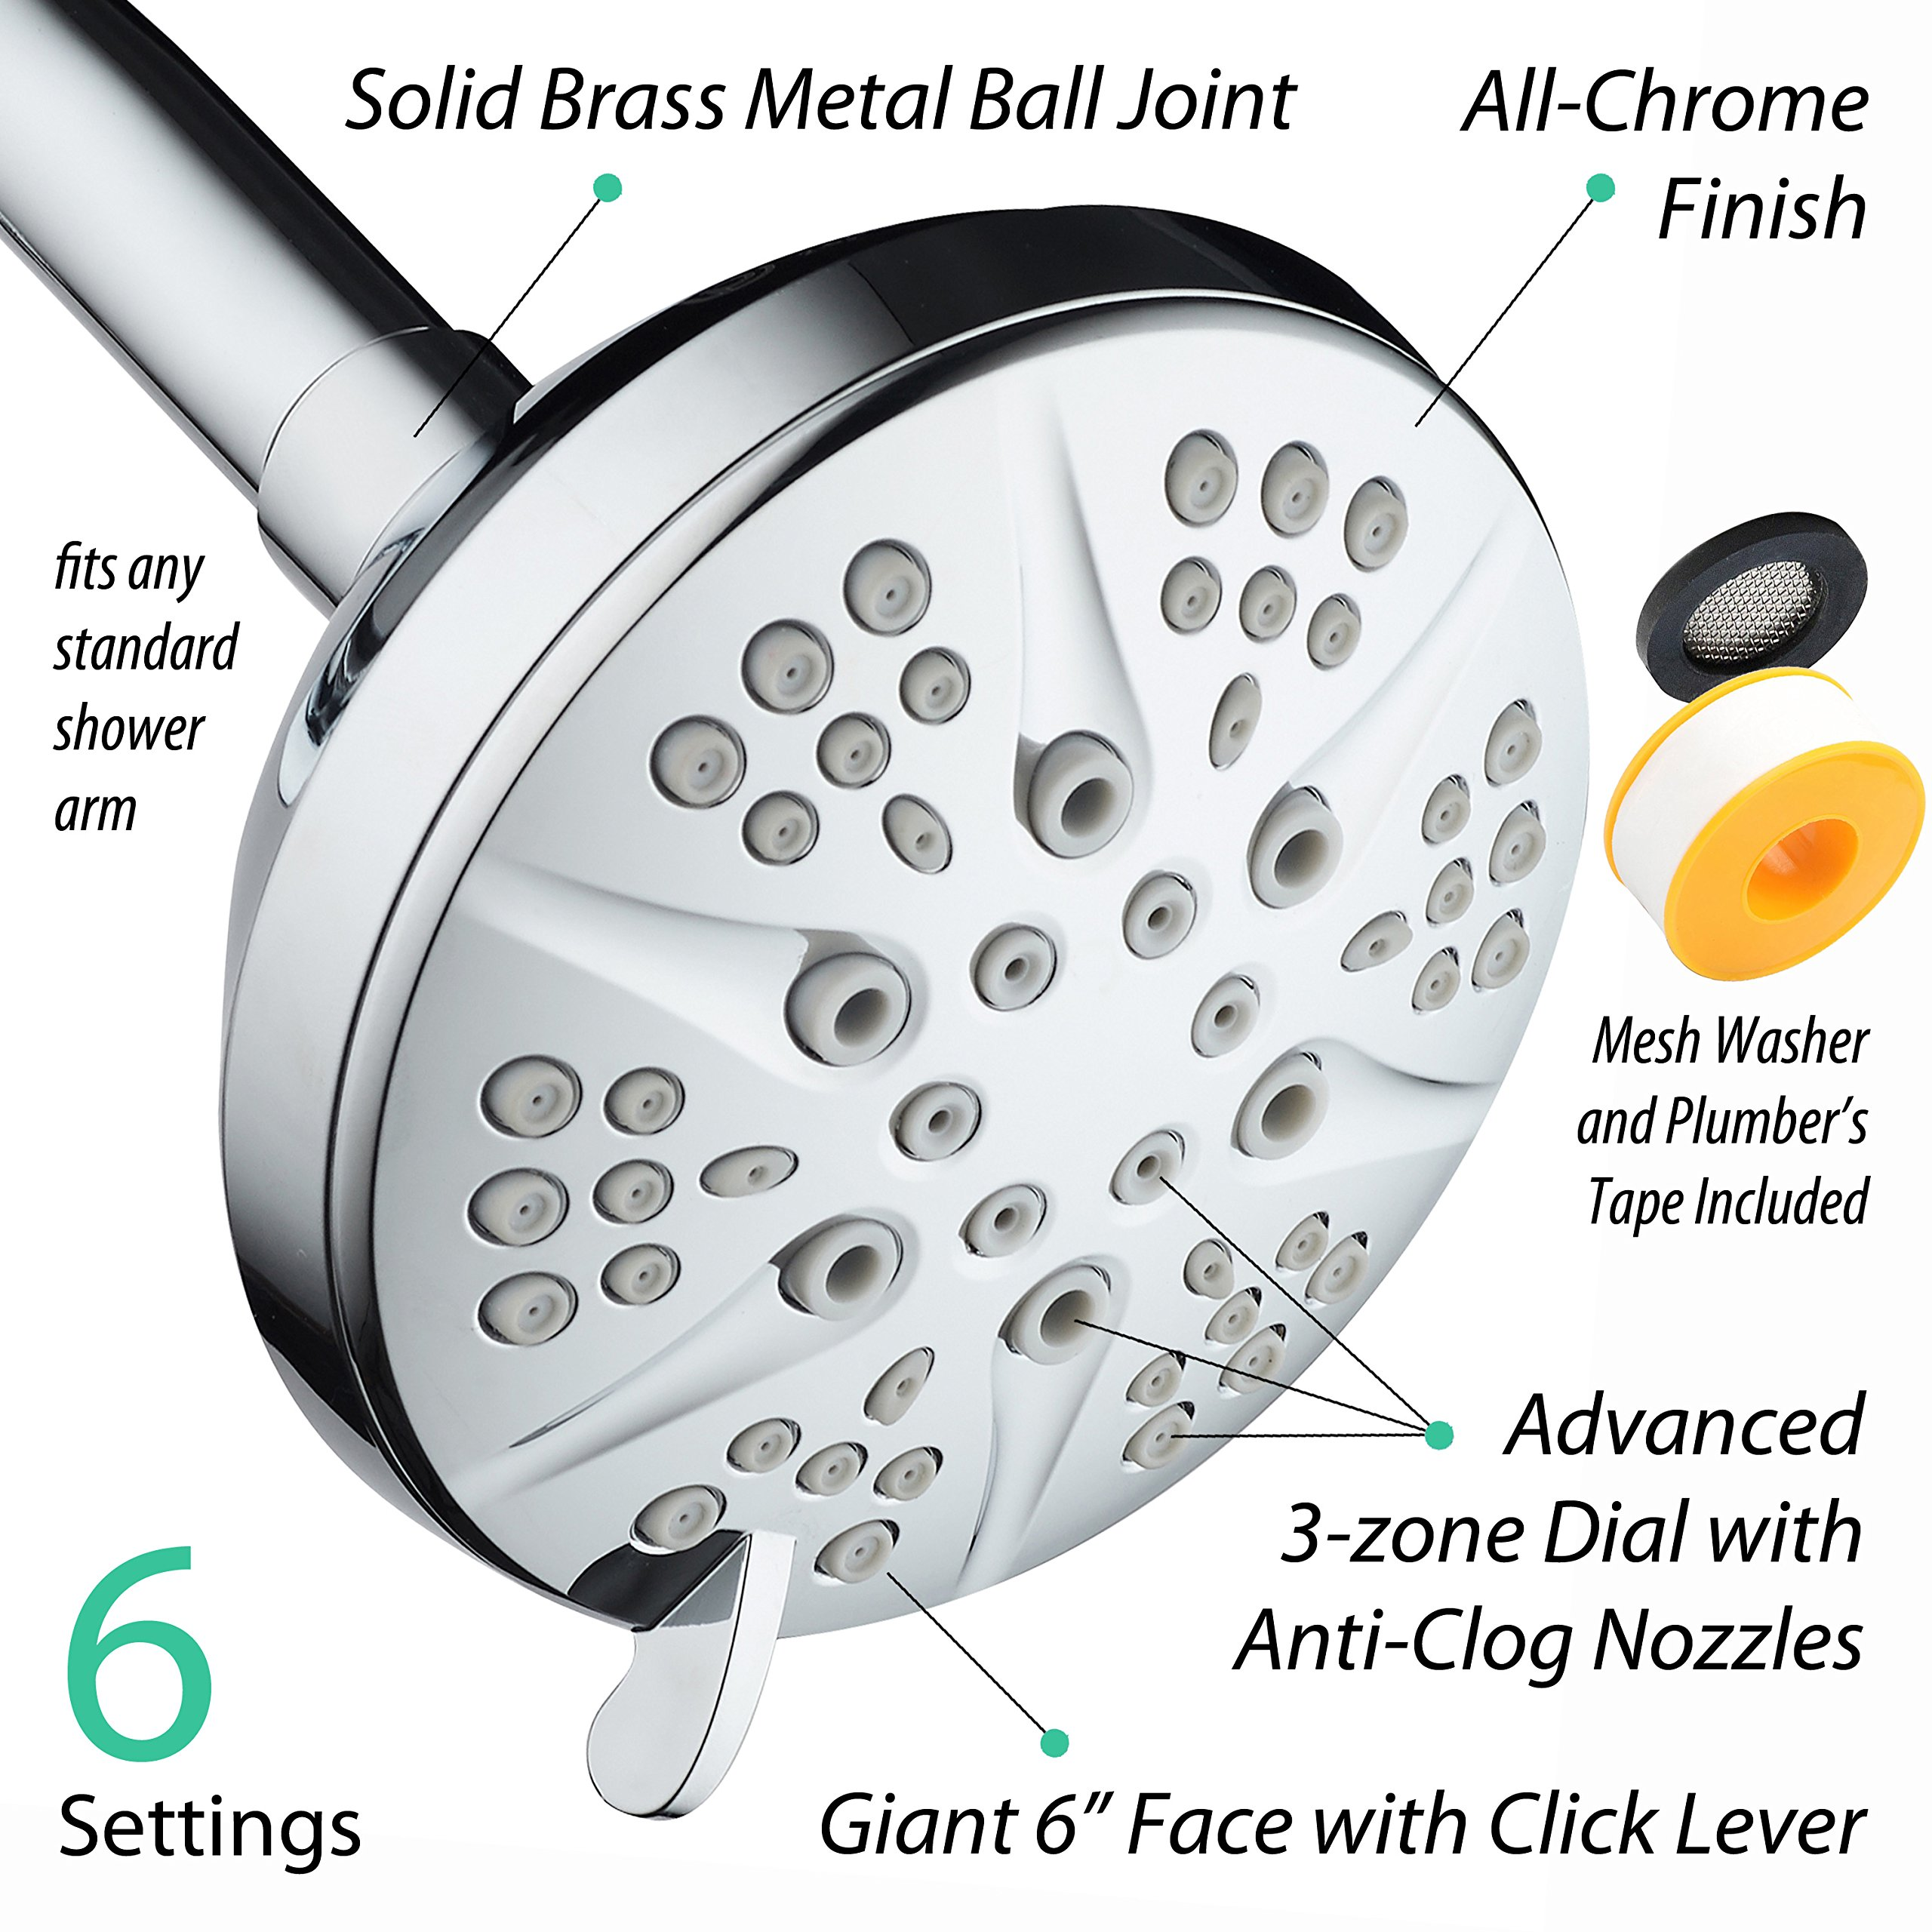 NOTILUS Giant High-Pressure 6-setting 4.3'' Face Modern Luxury Spa Shower Head - Solid Brass Metal Connection Nut, Angle-Adjustable Ball Joint, Anti-Clog Jets, All-Chrome Finish, by HotelSpa (Image #7)